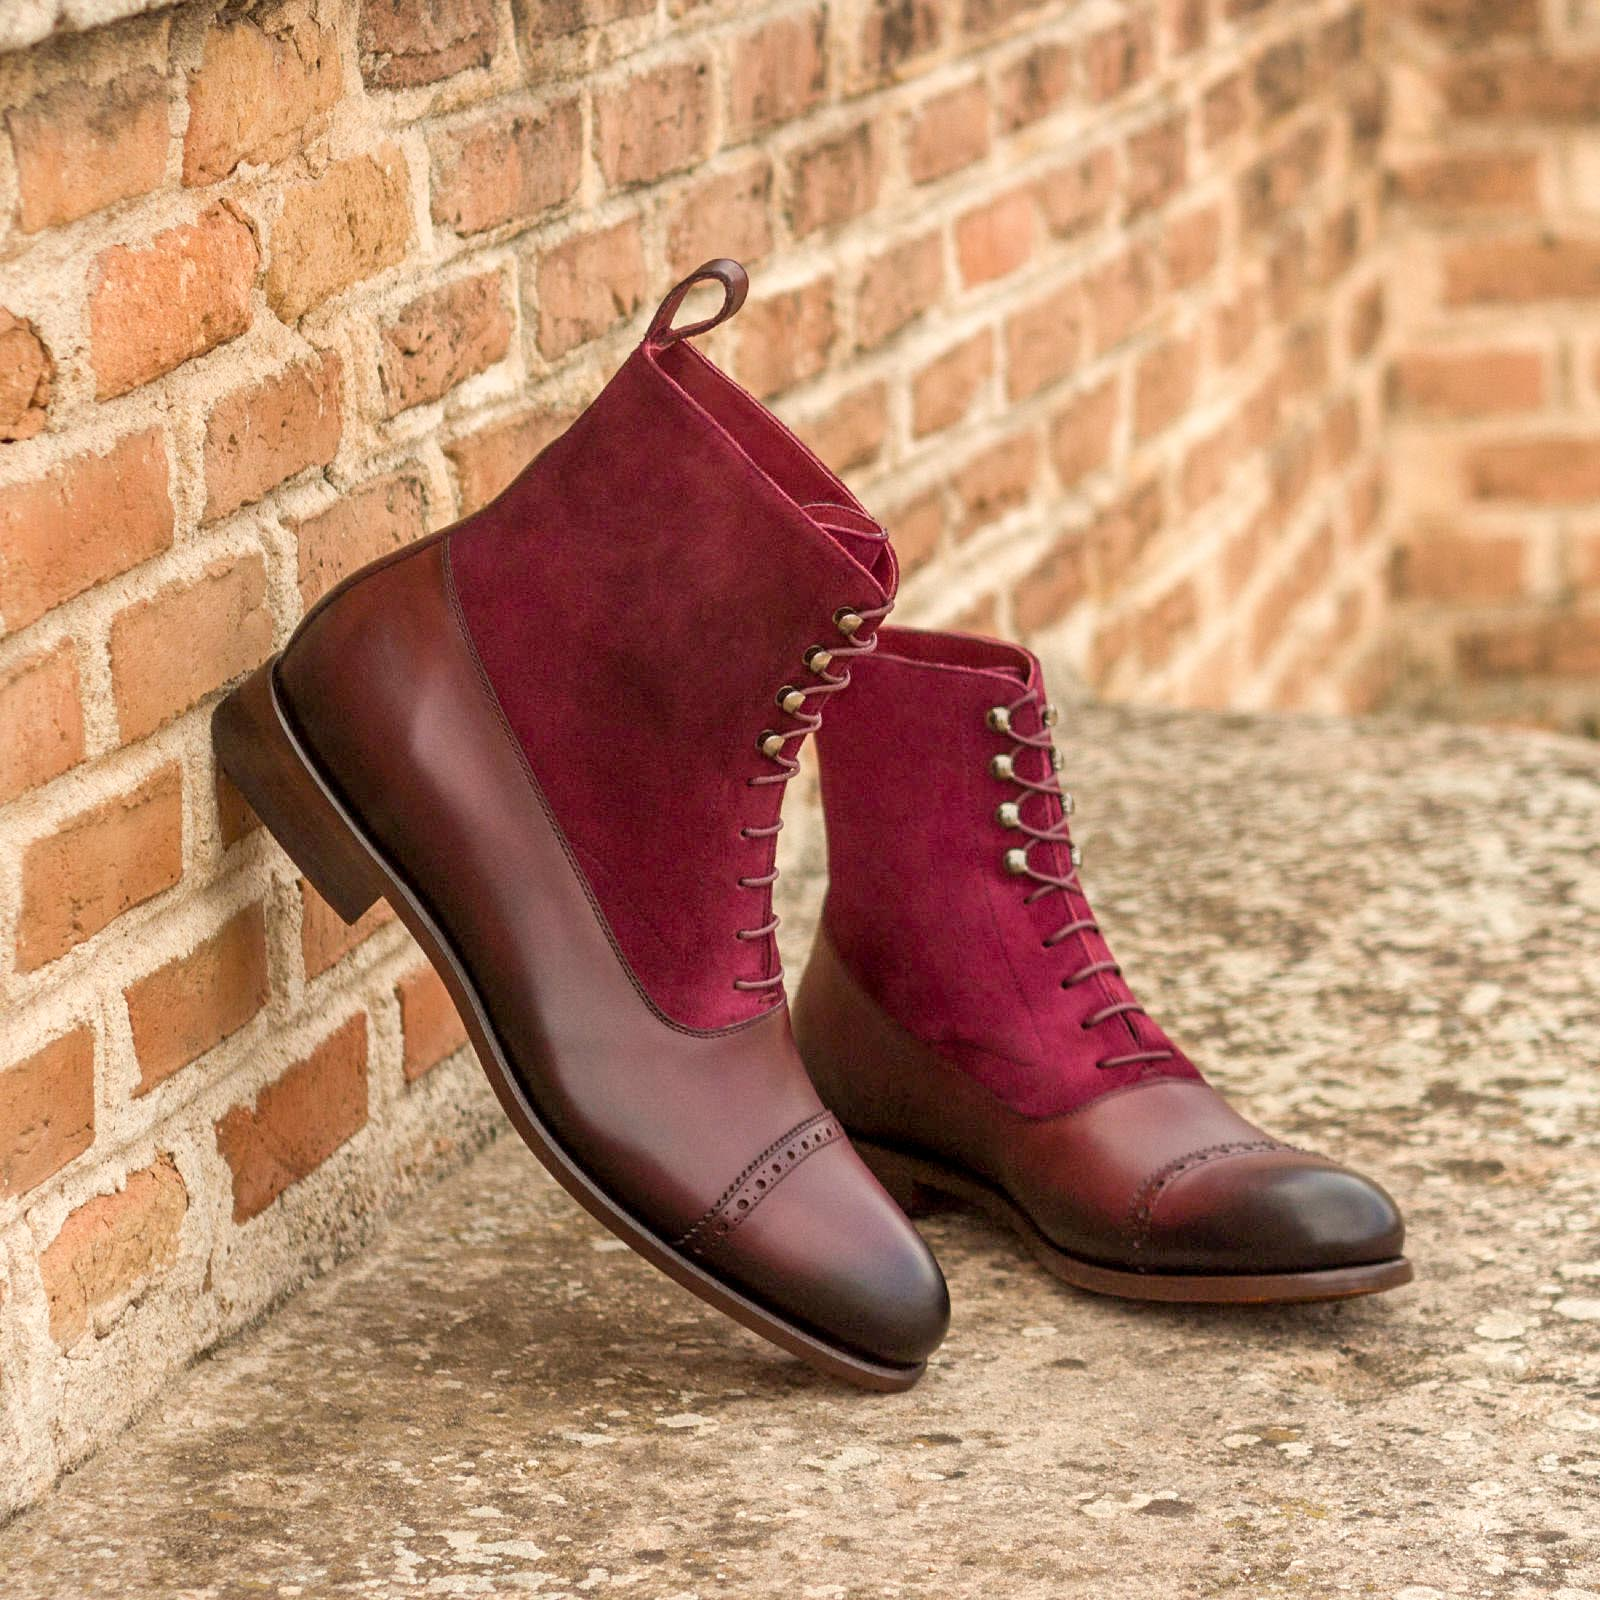 Balmoral boot wine kid suede + burgundy painted calf : 260€